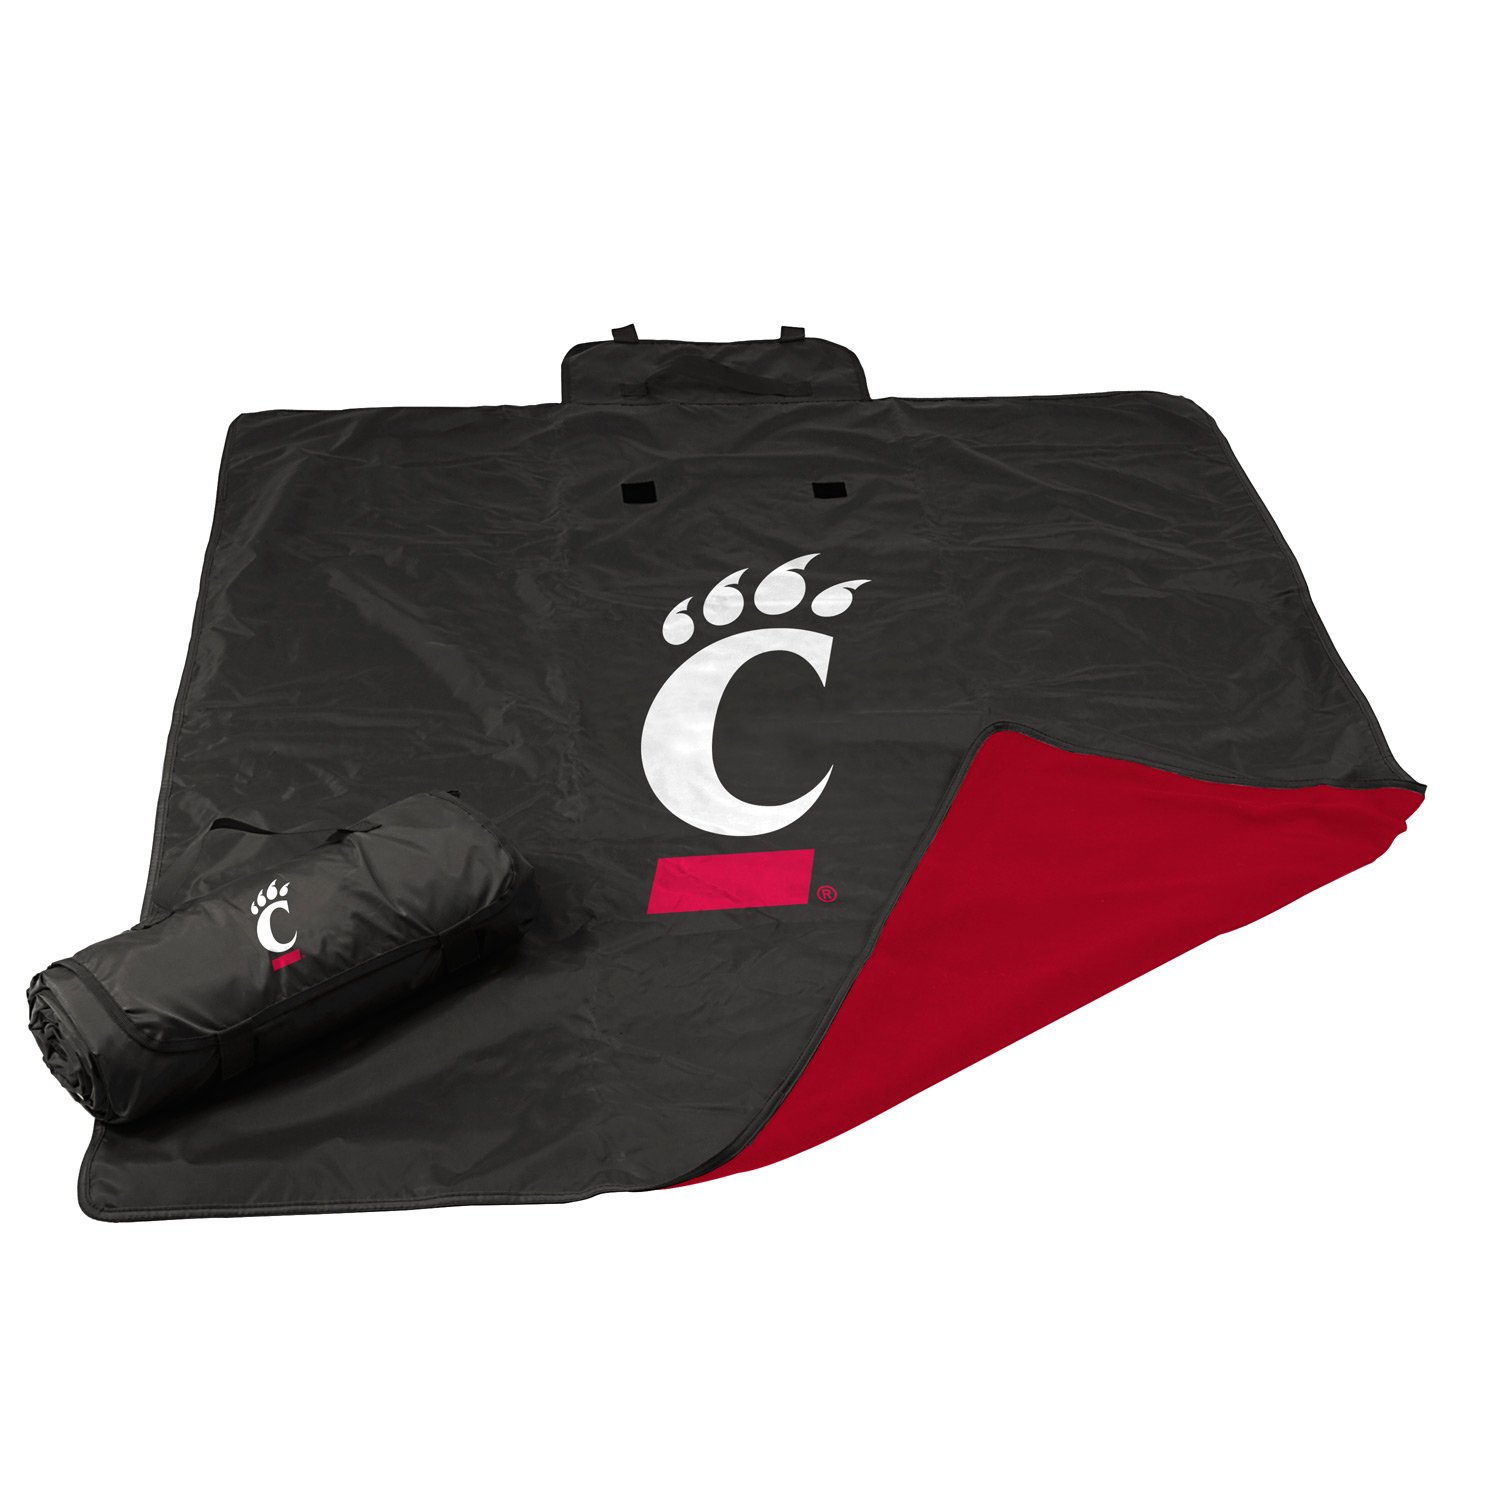 "Cincinnati Bearcats Official NCAA 50""x60"" All Weather Blanket by Logo 121732"